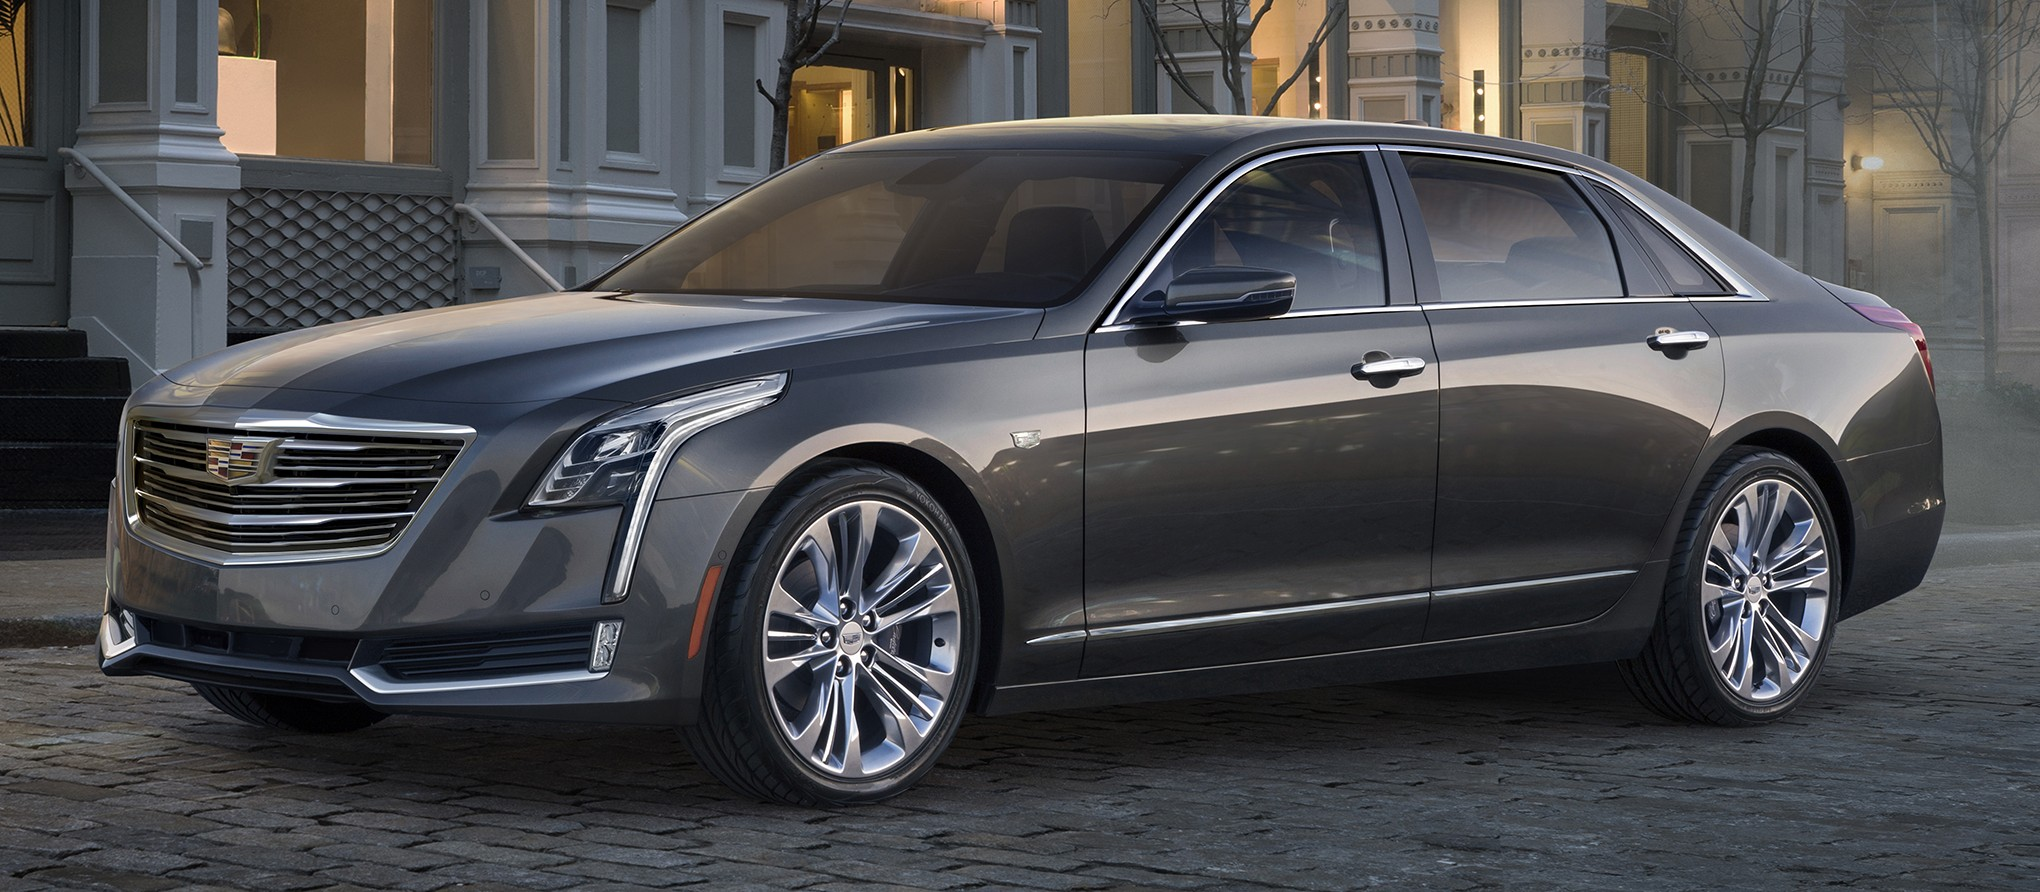 2016 Cadillac CT6 rocks up to New York with 400 hp Paul